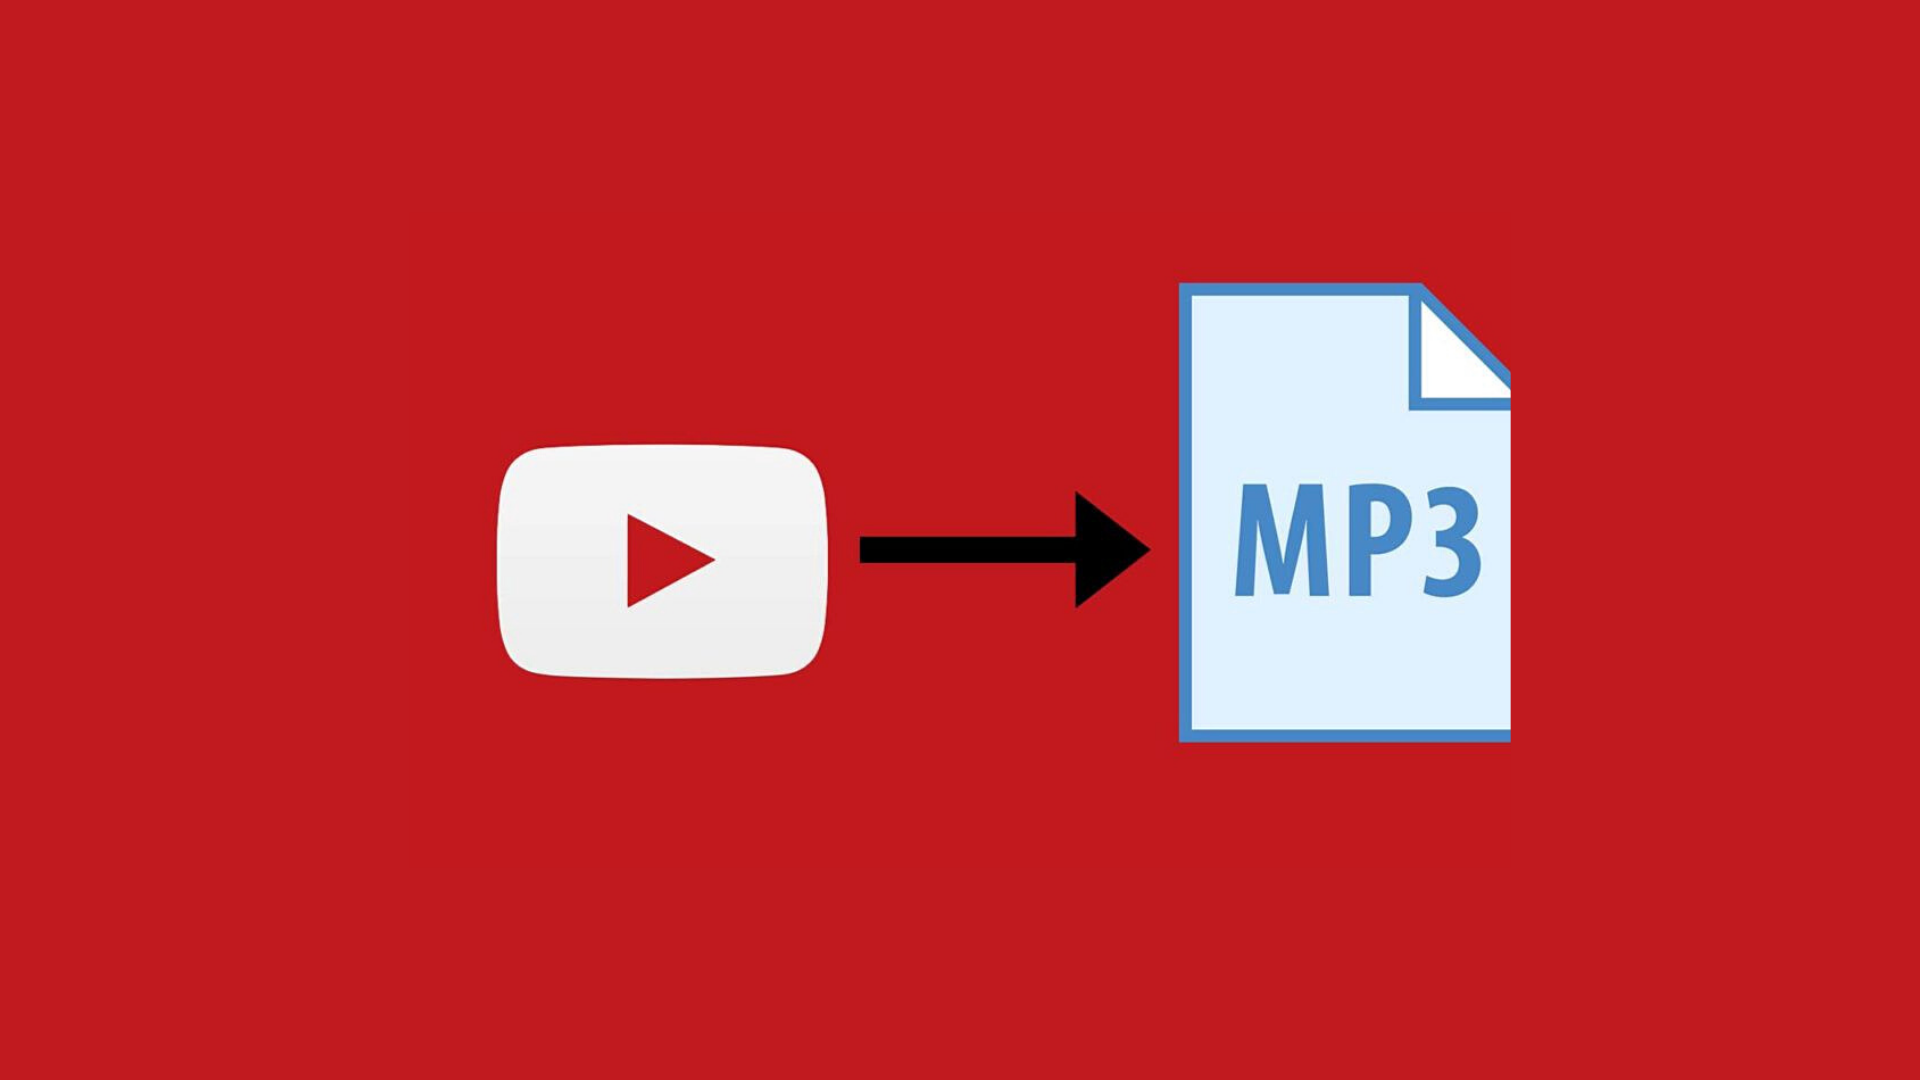 How to download MP3 music for free